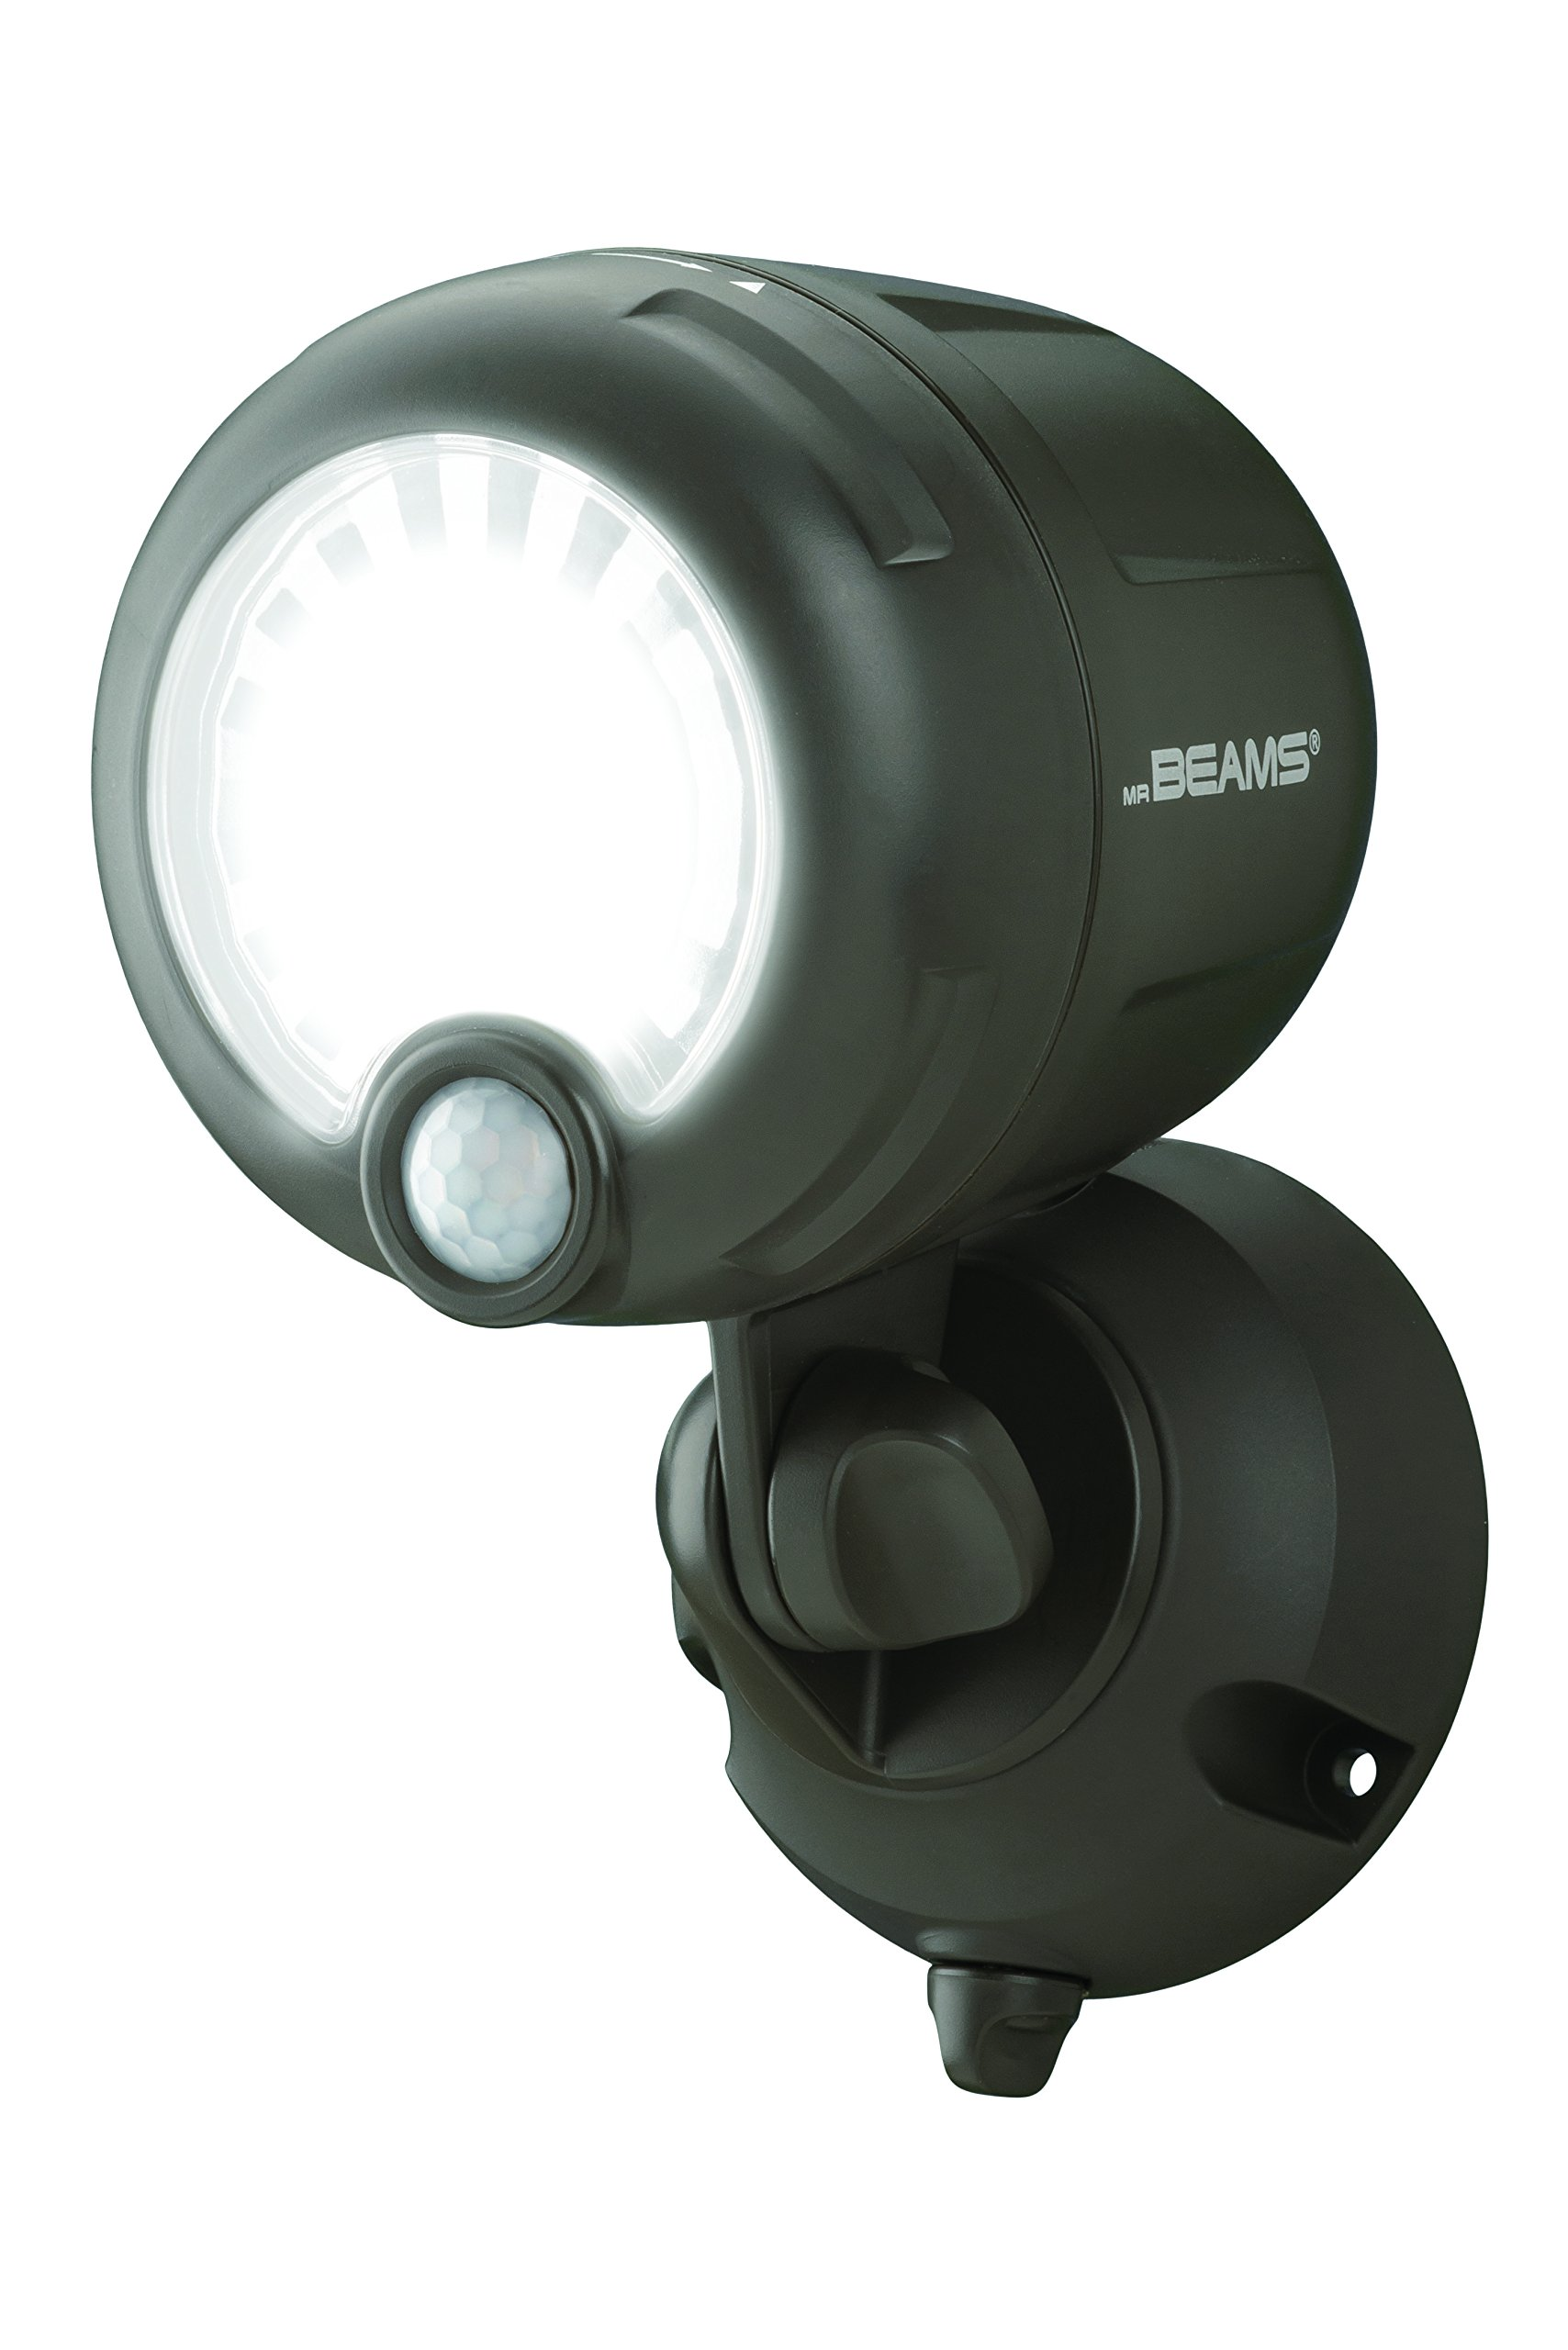 Mr. Beams MB360XT-Brn-01-00 Wireless 200 Lm Battery-Operated Outdoor Motion-Sensor-Activated LED Spotlight, Black